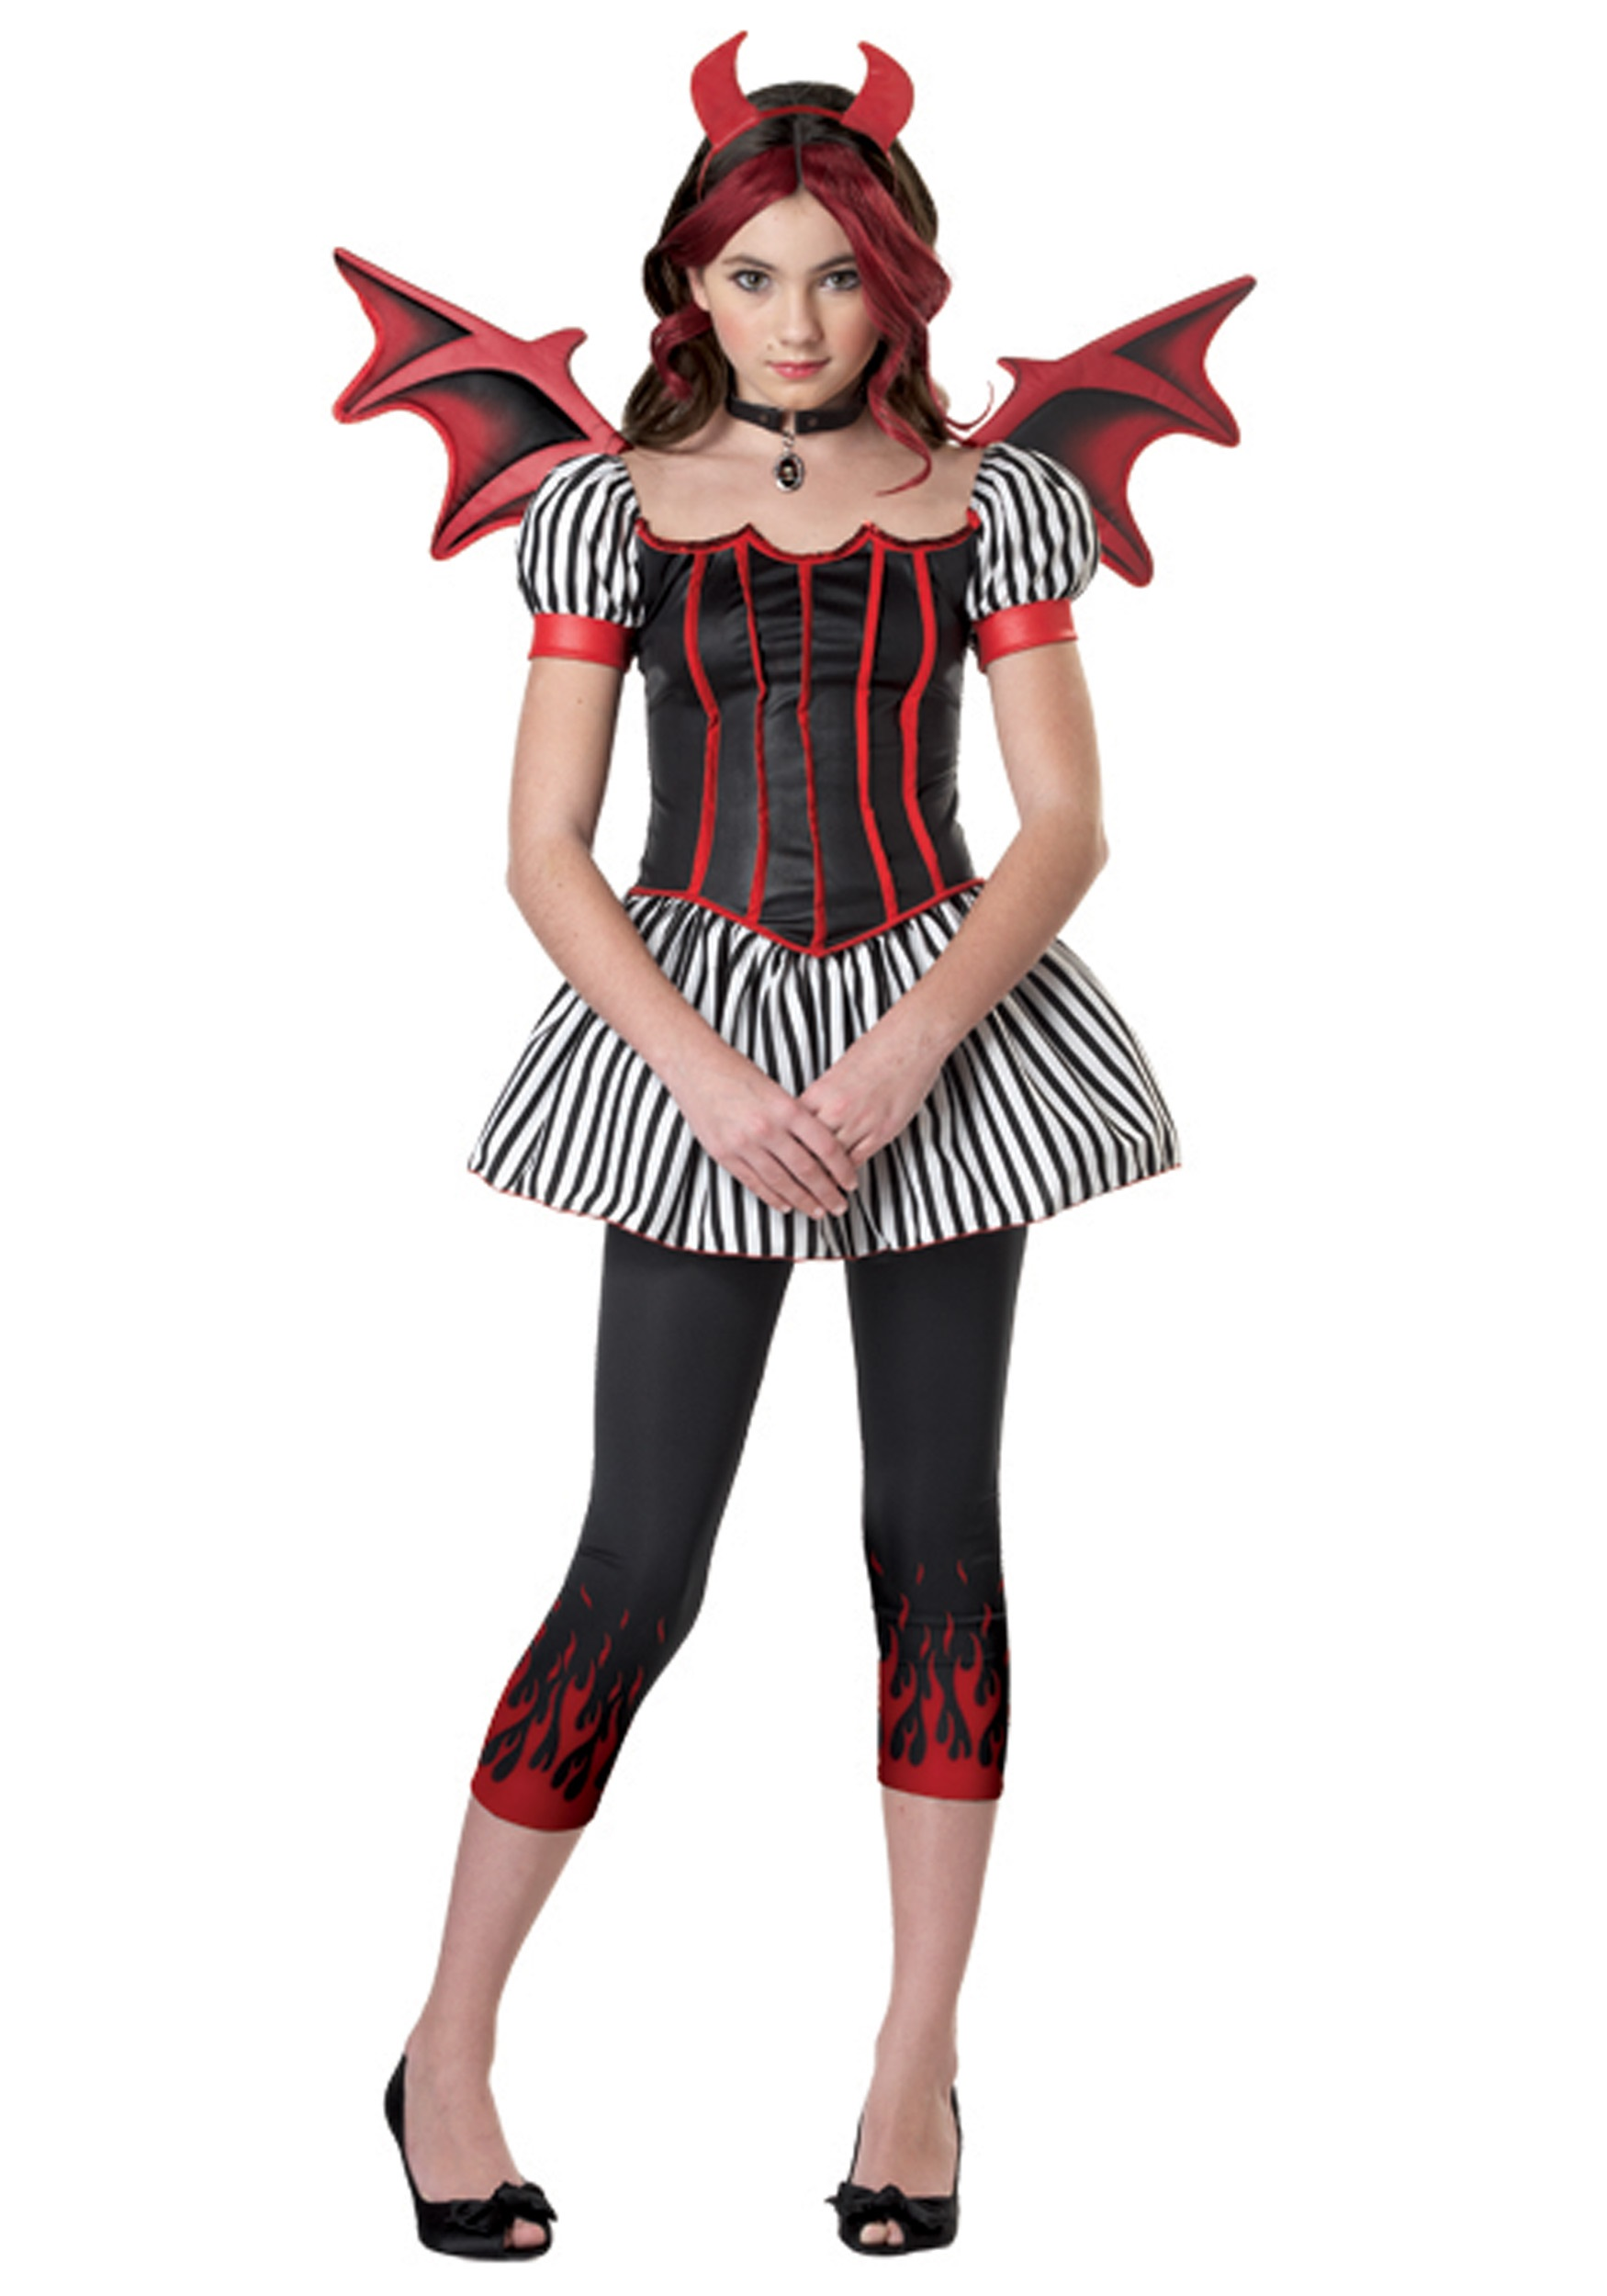 Tween Strangelings Devil Costume  sc 1 st  Halloween Costumes & Tween Strangelings Devil Costume - Halloween Costumes